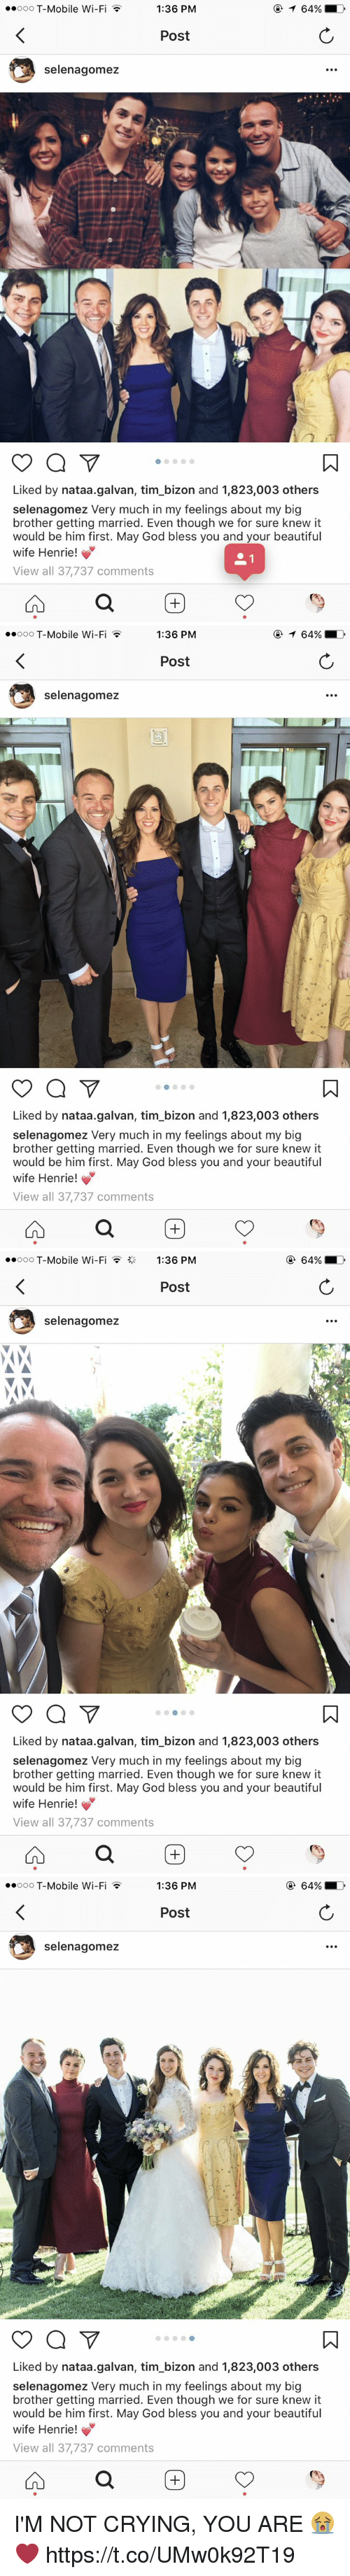 Beautiful, Crying, and Funny: ooo T-Mobile Wi-F  1:36 PM  Post  selenagomez  Liked by nataa.galvan, tim bizon and 1,823,003 others  selenagomez Very much in my feelings about my big  brother getting married. Even though we for sure knew it  would be him first. May God bless you and your beautiful  wife Henrie  View all 37,737 comments   1:36 PM  ooooo T-Mobile Wi-Fi  Post  selenagomez  Liked by nataa.galvan, tim bizon and 1,823,003 others  selenagomez Very much in my feelings about my big  brother getting married. Even though we for sure knew it  would be him first. May God bless you and your beautiful  wife Henrie  View all 37,737 comments   ooo T-Mobile Wi-Fi 1:36 PM  Post  selenagomez  Liked by nataa.galvan, tim bizon and 1,823,003 others  selenagomez Very much in my feelings about my big  brother getting married. Even though we for sure knew it  would be him first. May God bless you and your beautiful  wife Henrie  View all 37,737 comments   ooo T-Mobile Wi-F  1:36 PM  Post  selenagomez  Liked by nataa.galvan, tim bizon and 1,823,003 others  selenagomez Very much in my feelings about my big  brother getting married. Even though we for sure knew it  would be him first. May God bless you and your beautiful  wife Henrie  View all 37,737 comments I'M NOT CRYING, YOU ARE 😭❤️ https://t.co/UMw0k92T19